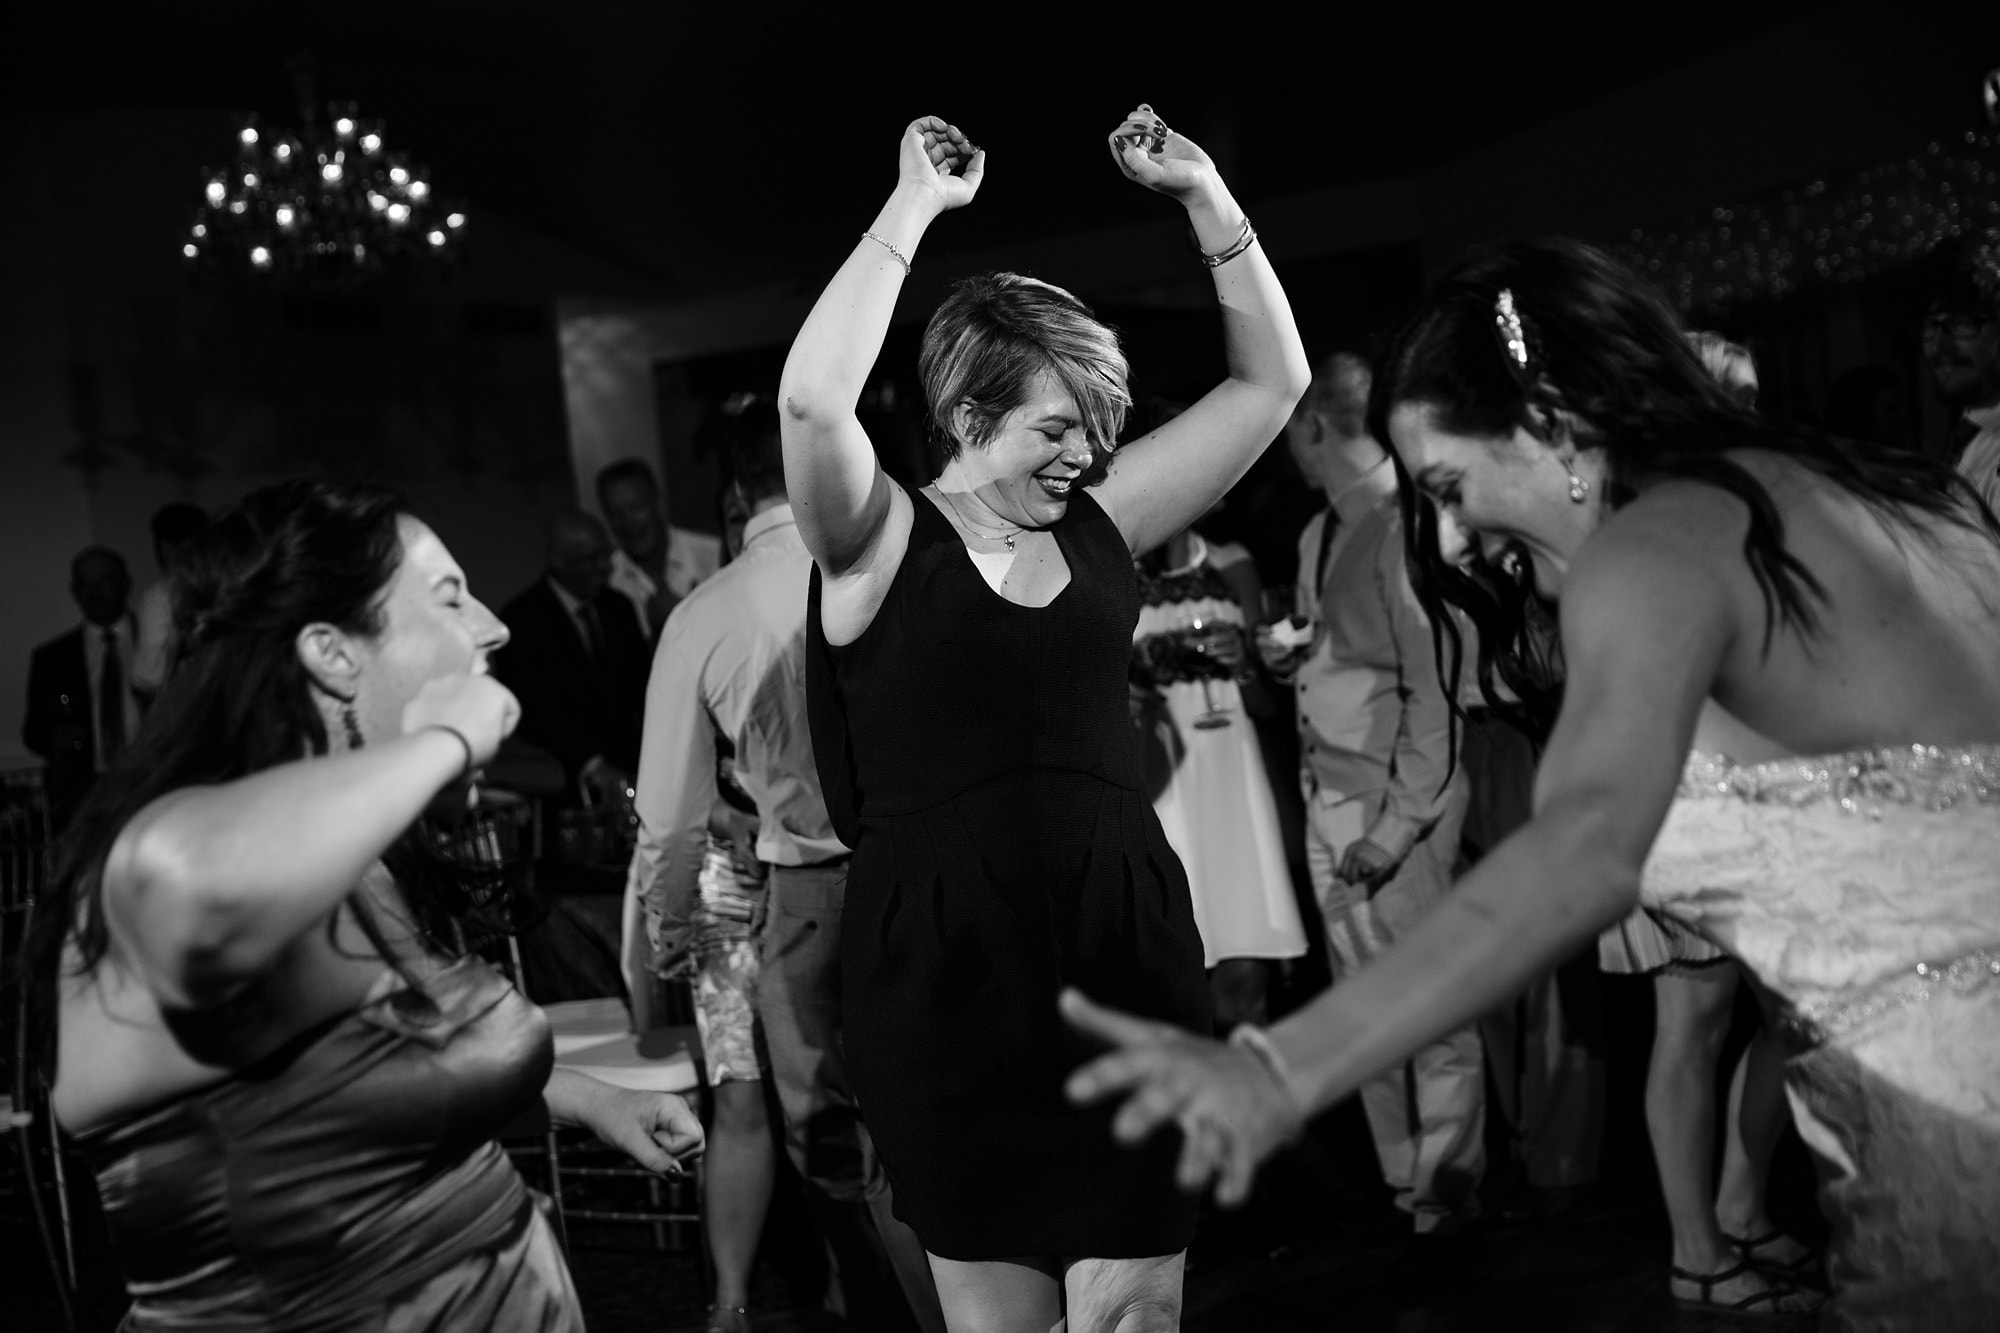 Gina and her friends dance the night away at Willow Ridge Manor